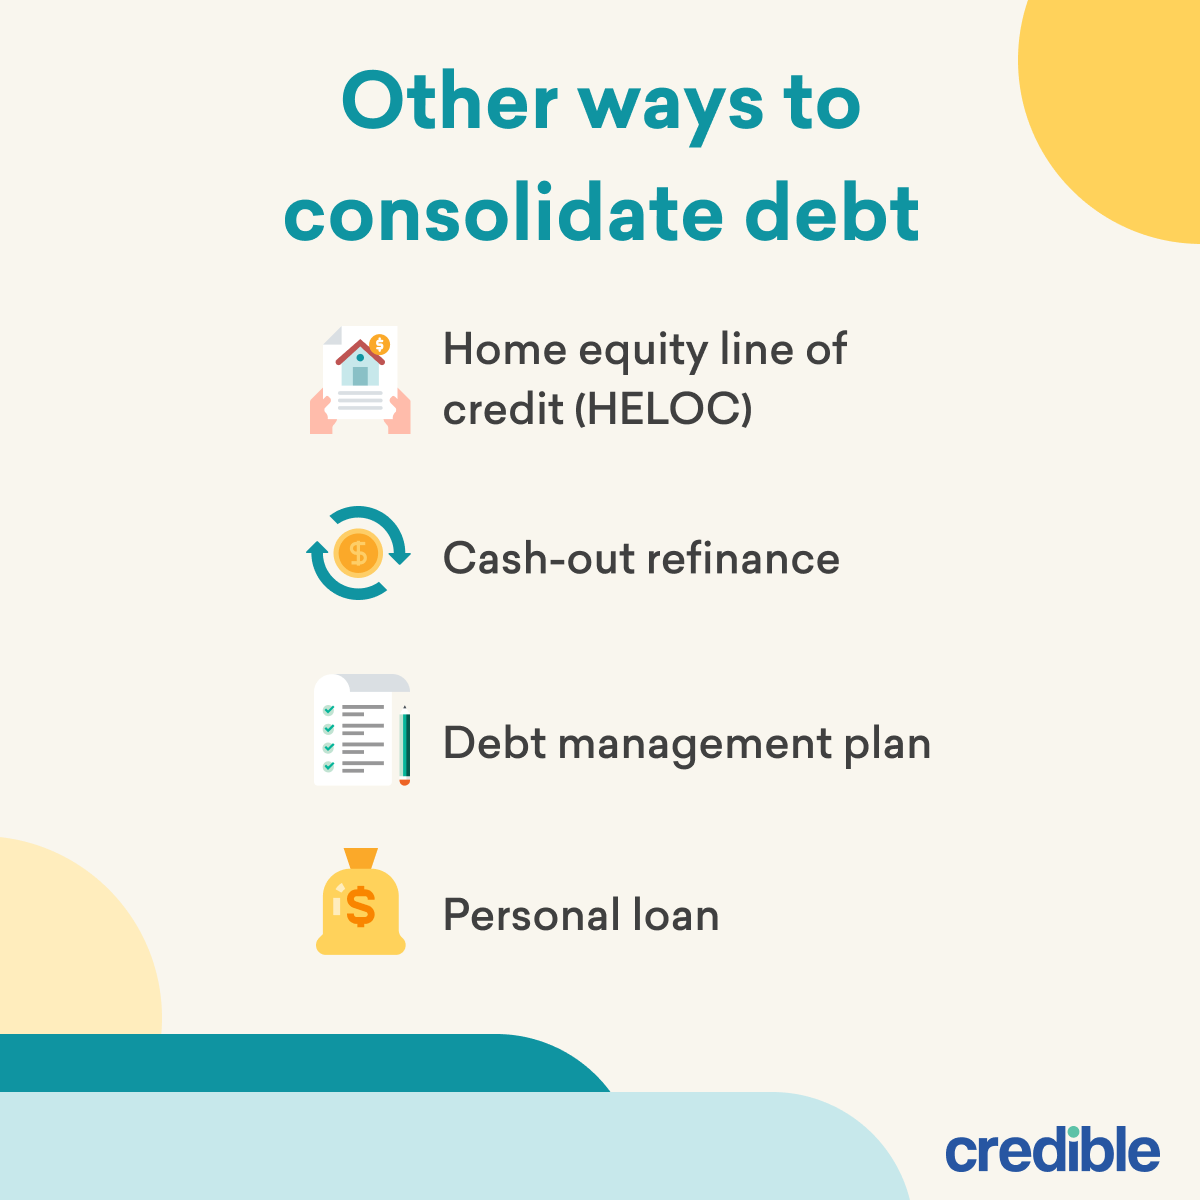 Other Ways to Consolidate Debt Infographic